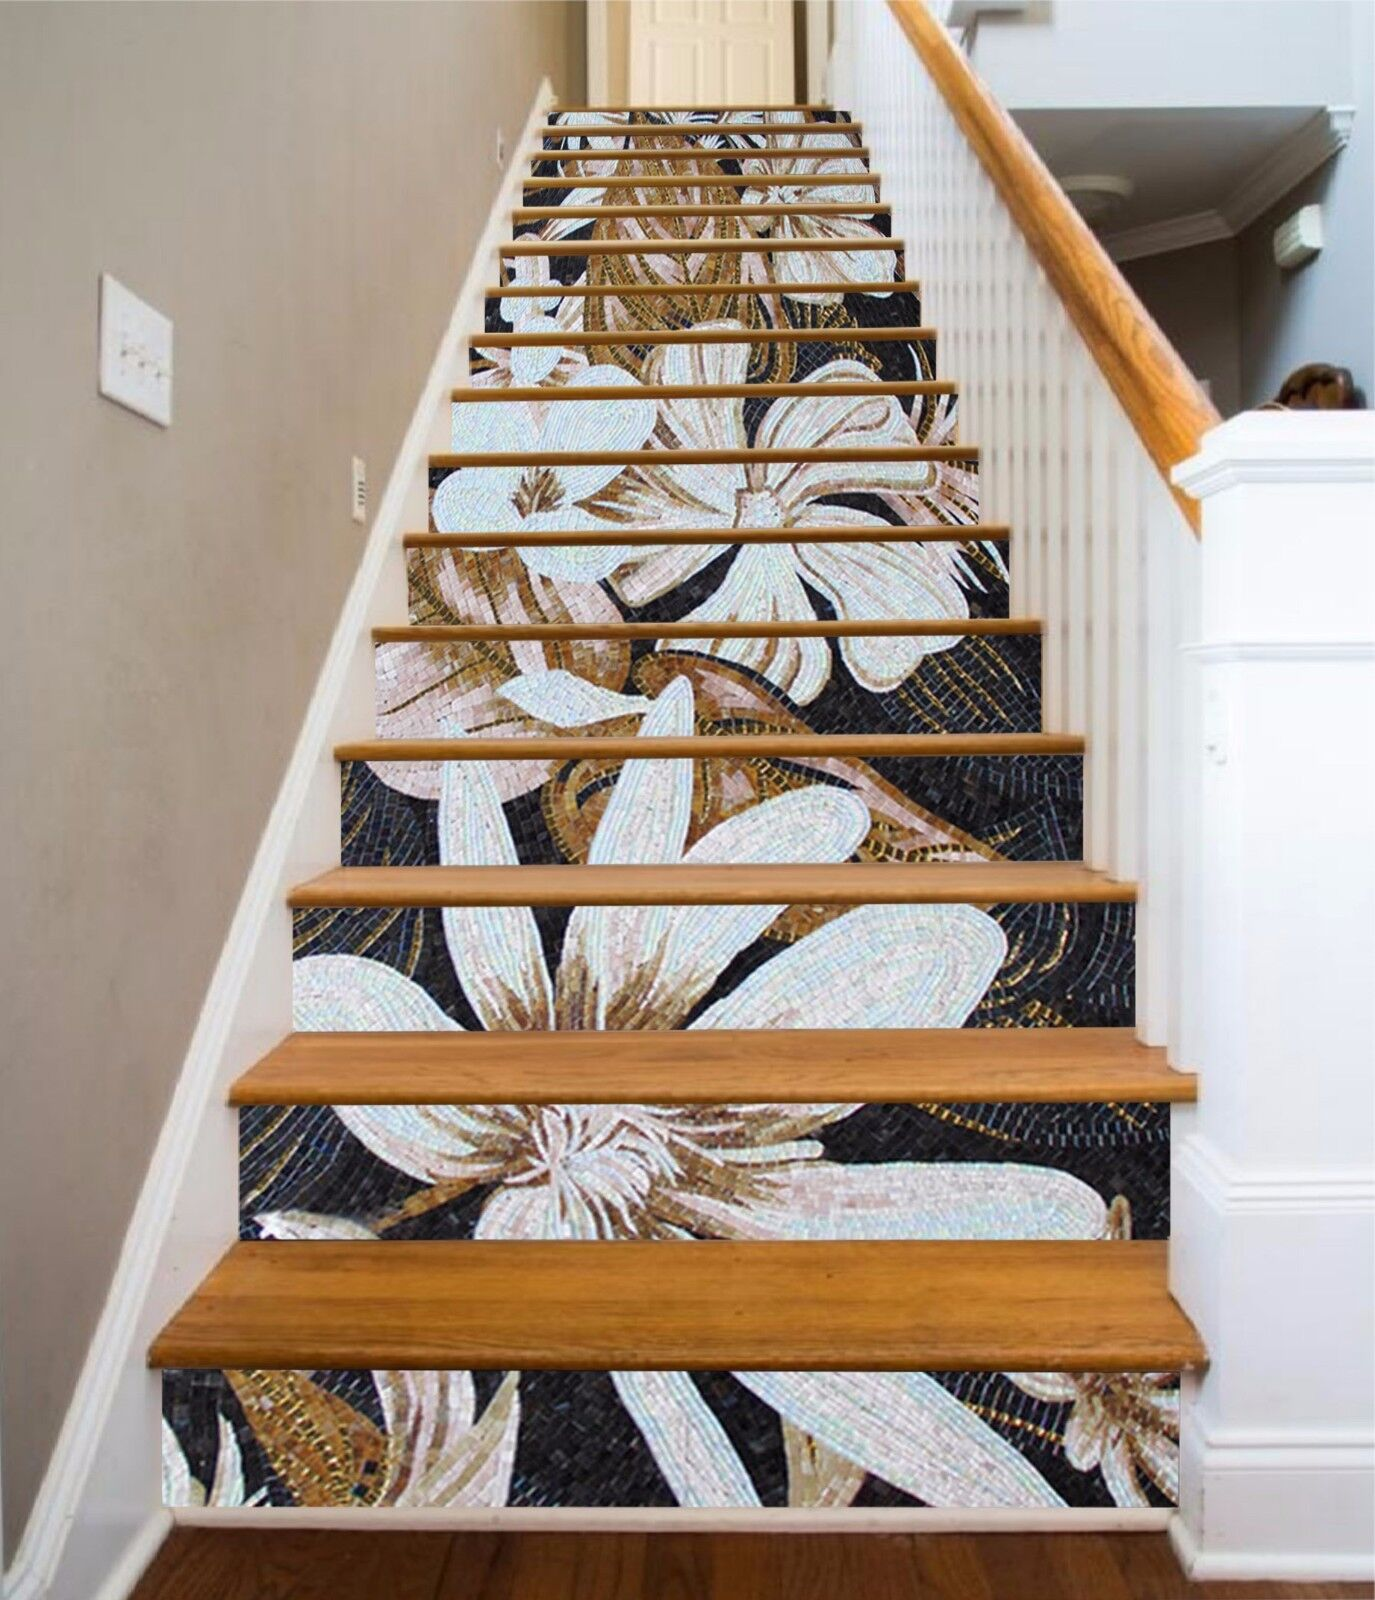 3D Flower Leaf 49 Stair Risers Decoration Photo Mural Vinyl Decal WandPapier AU